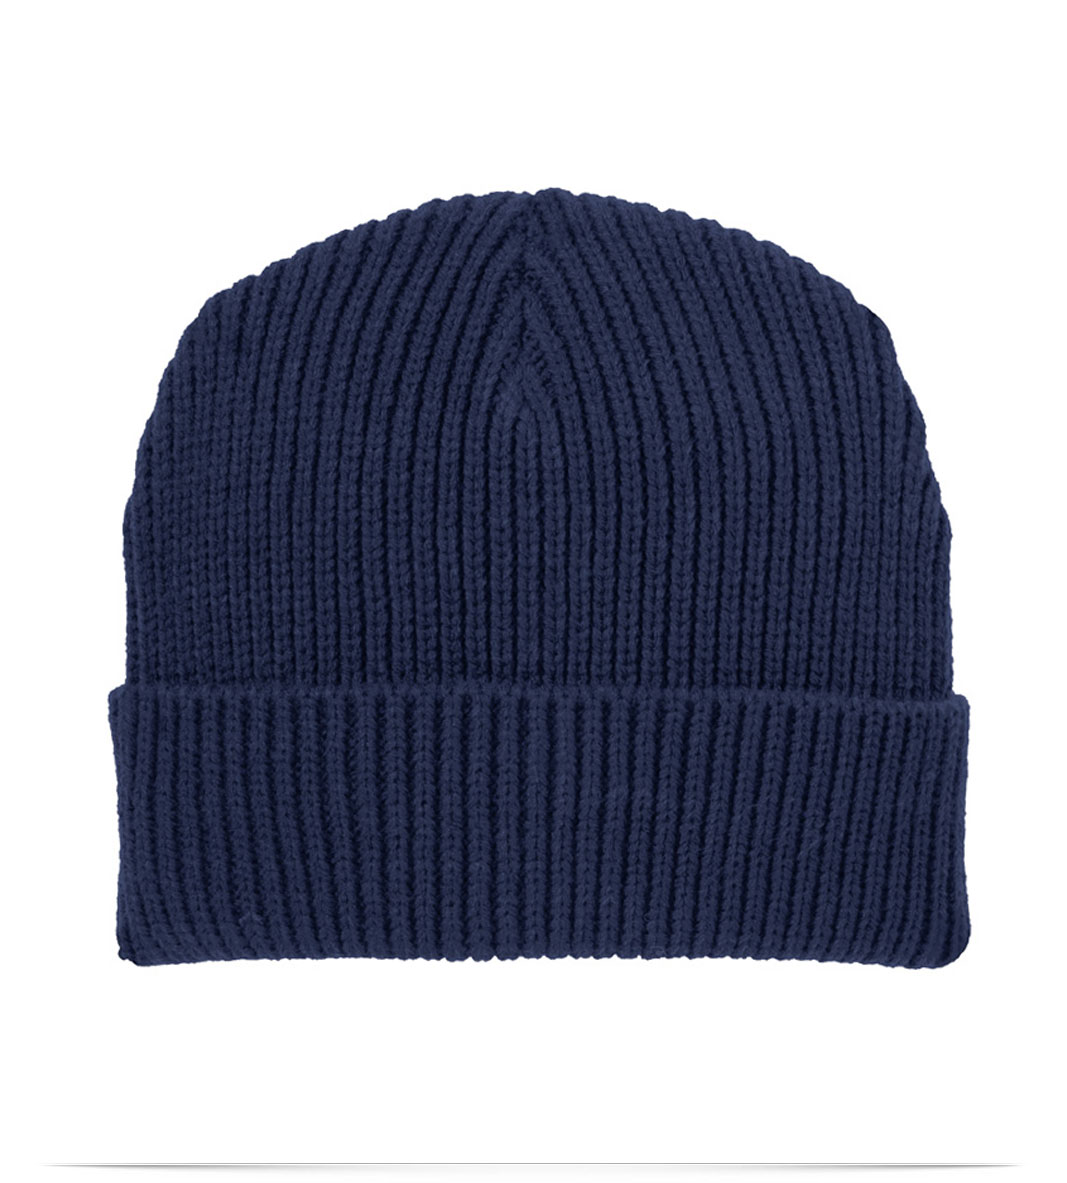 Logo Heat Applied above embroidery Good quality 1 size! Team Colors on Direct 3D Embroidered Knit Cuffed Pom Beanie hat cap New England